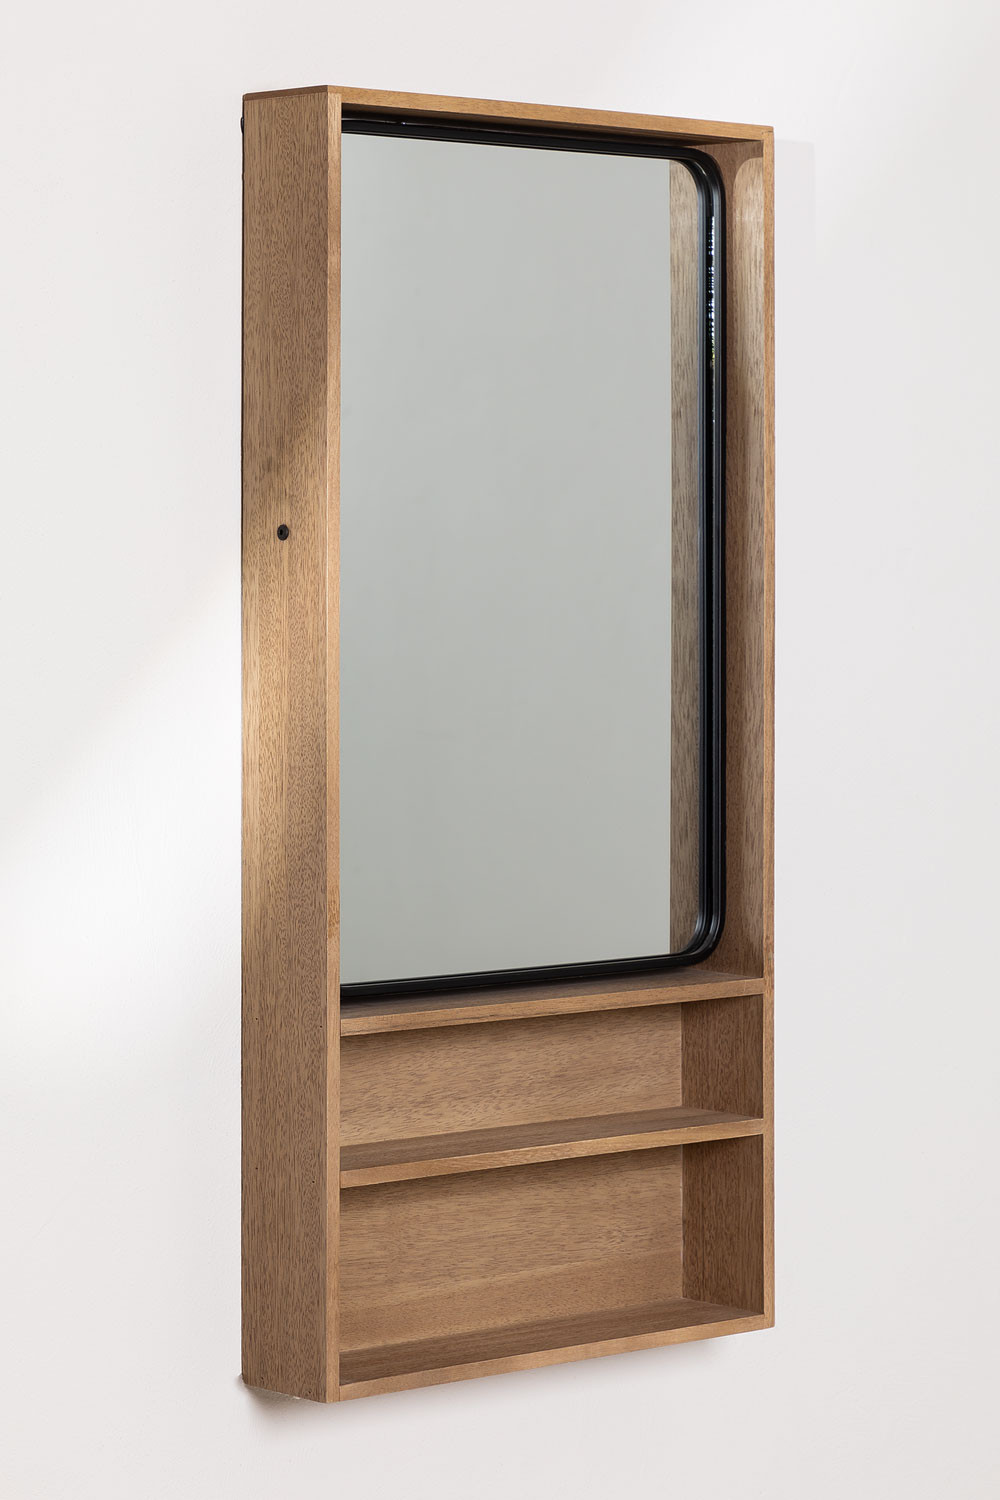 Quhe Rectangular Wall Mirror with Shelves in MDF (96x46 cm), gallery image 1